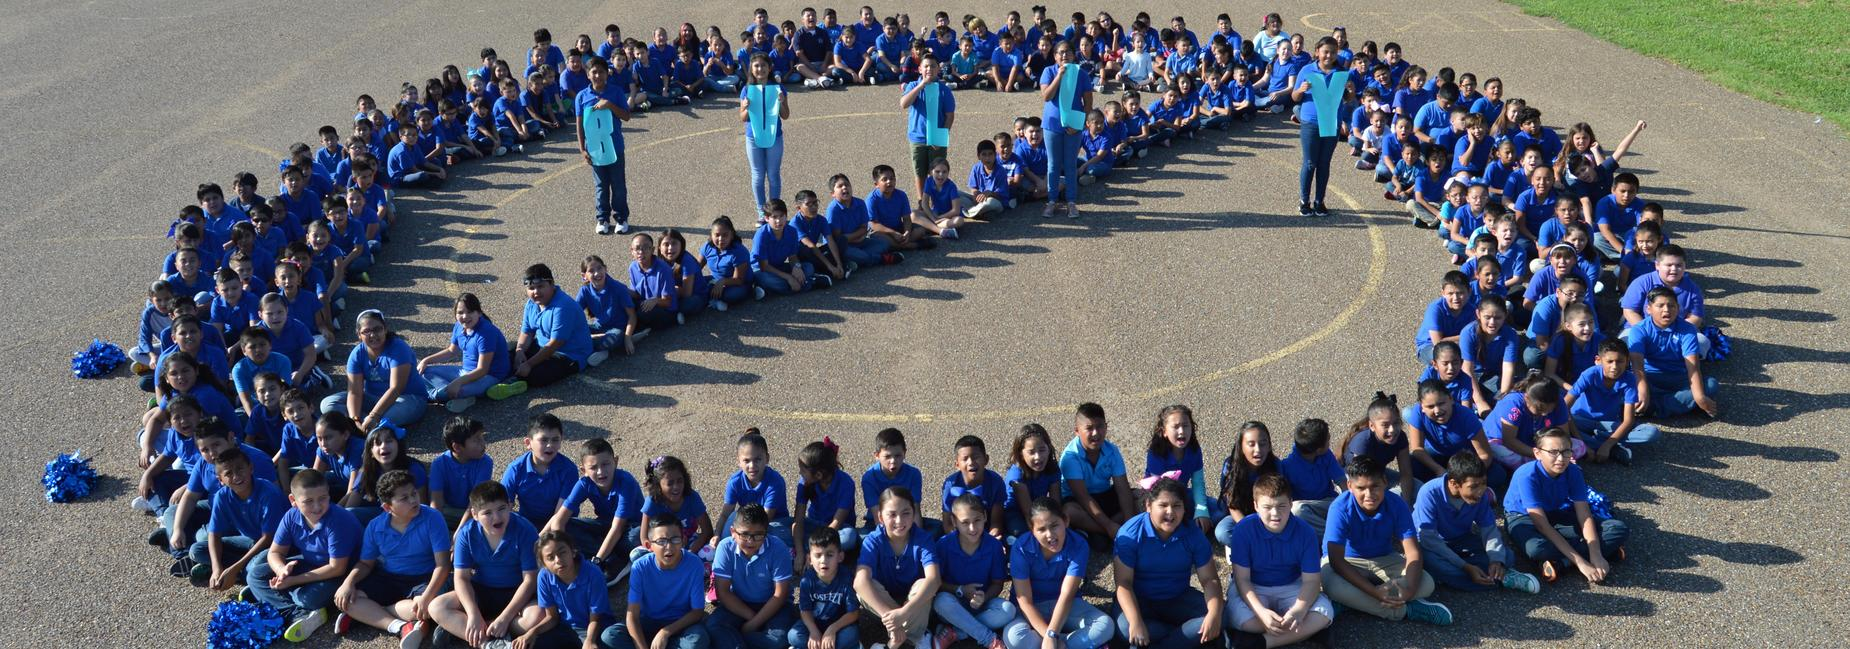 ROOSEVELT STUDENTS TAKING ACTION BY STOMPING OUT BULLYING!